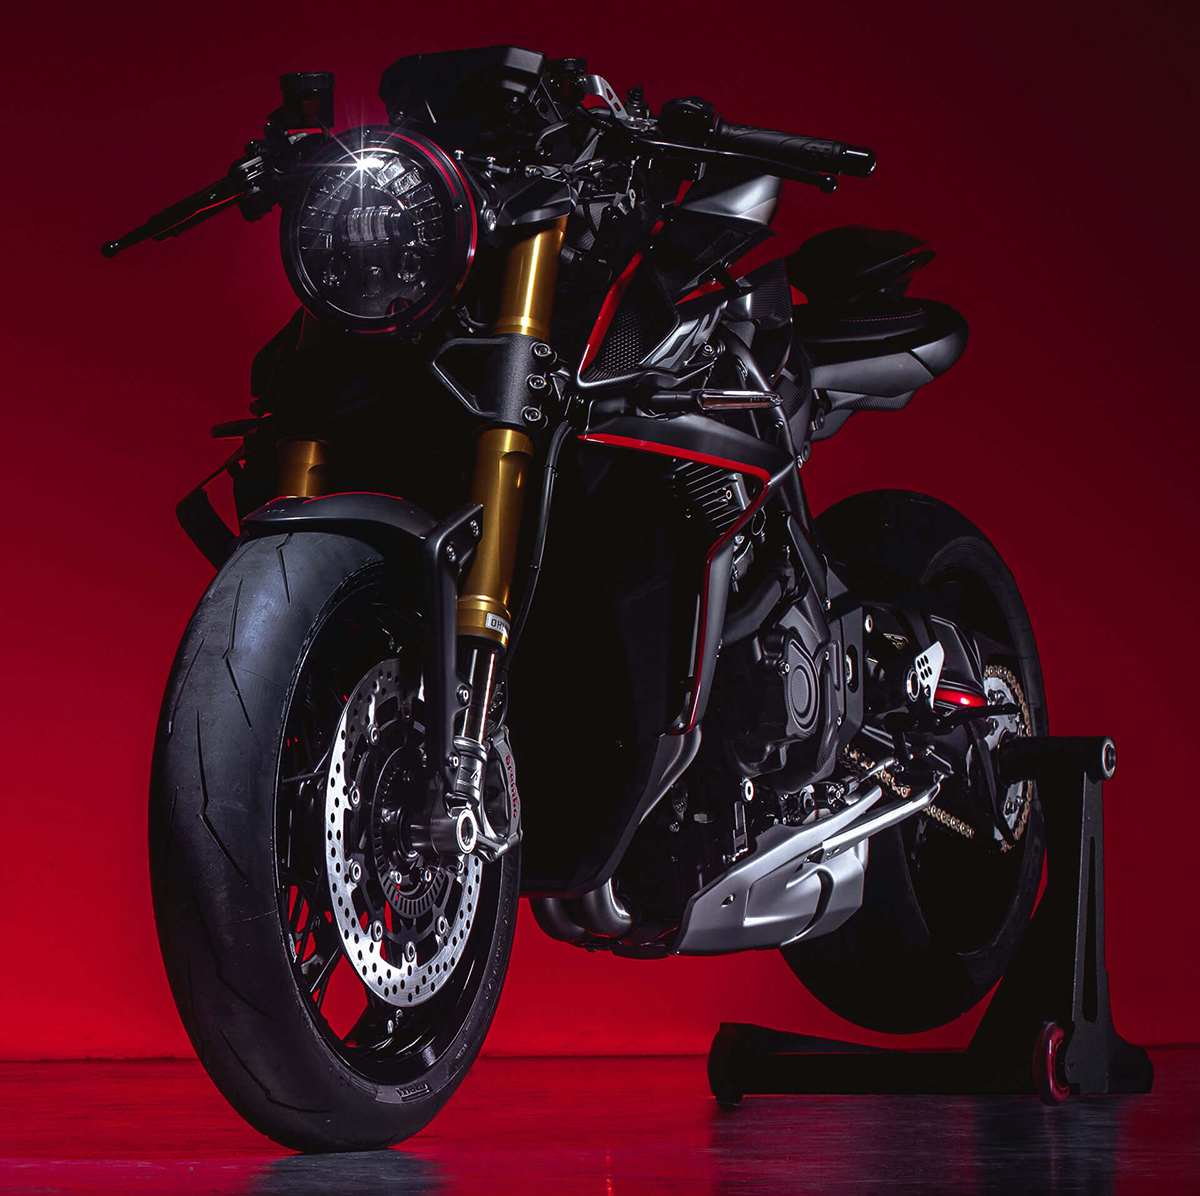 2020 MV Agusta Rush 1000 Enters Production In June